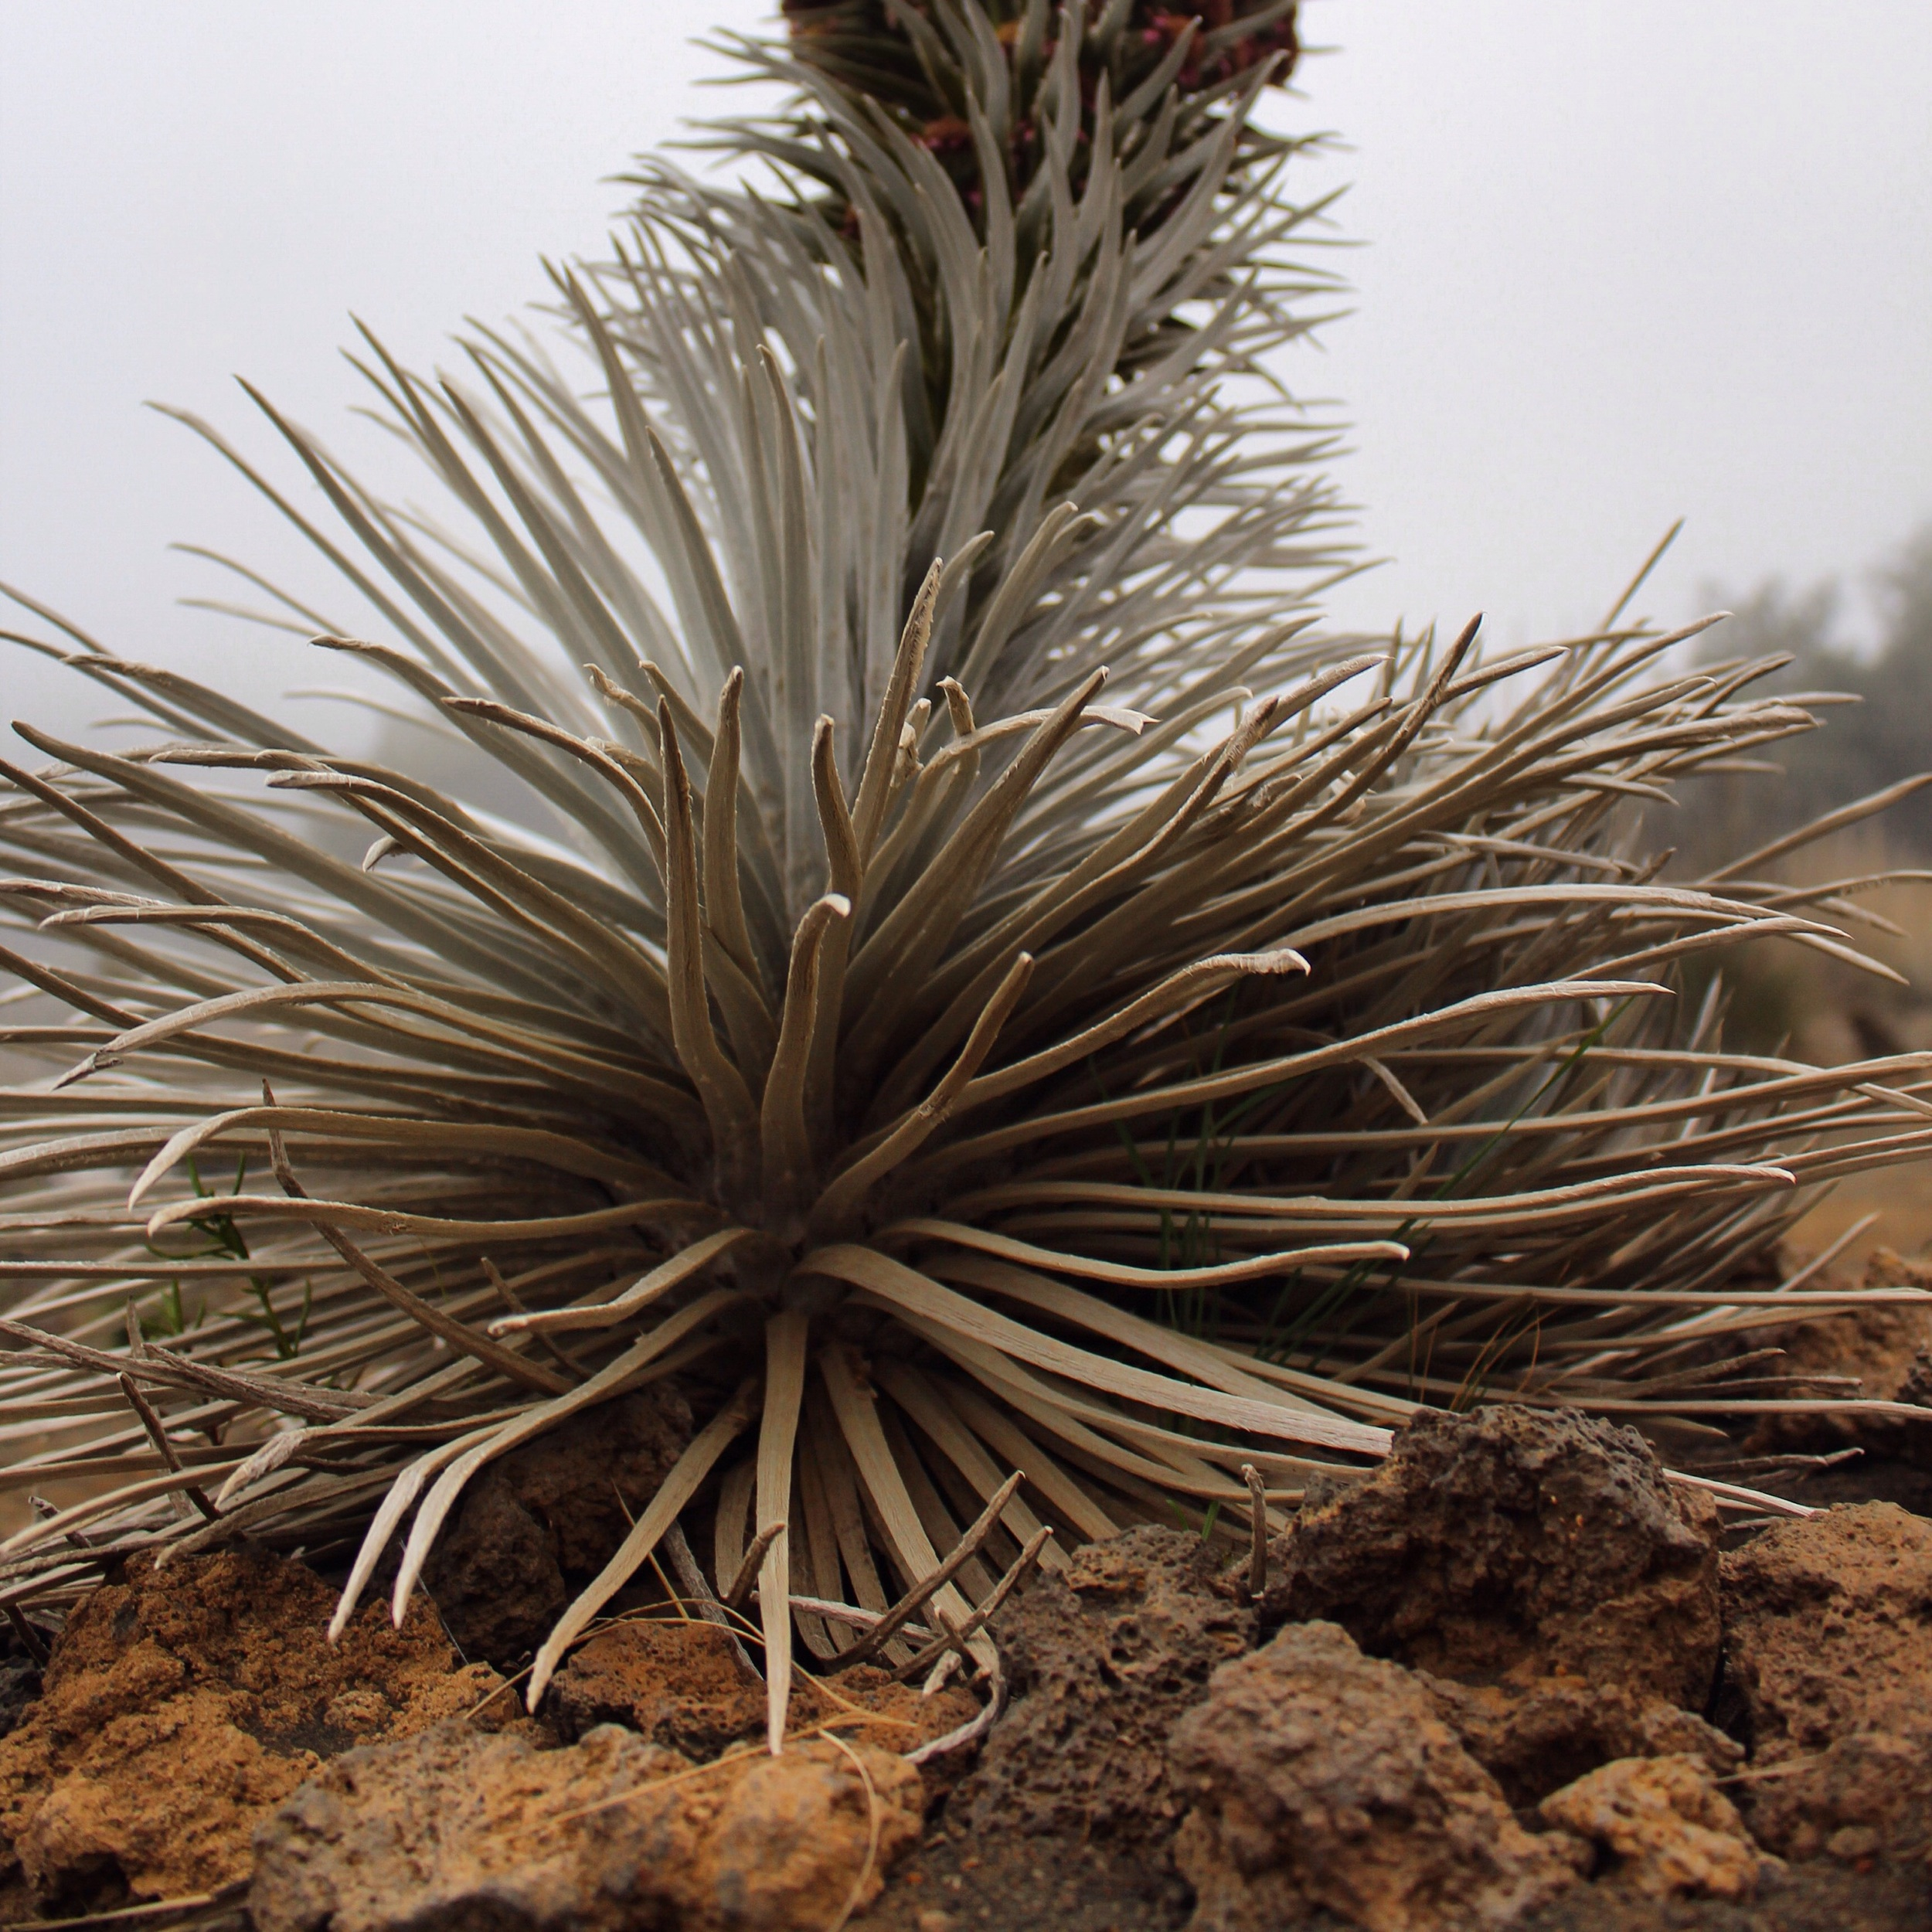 The Silversword plant from below.